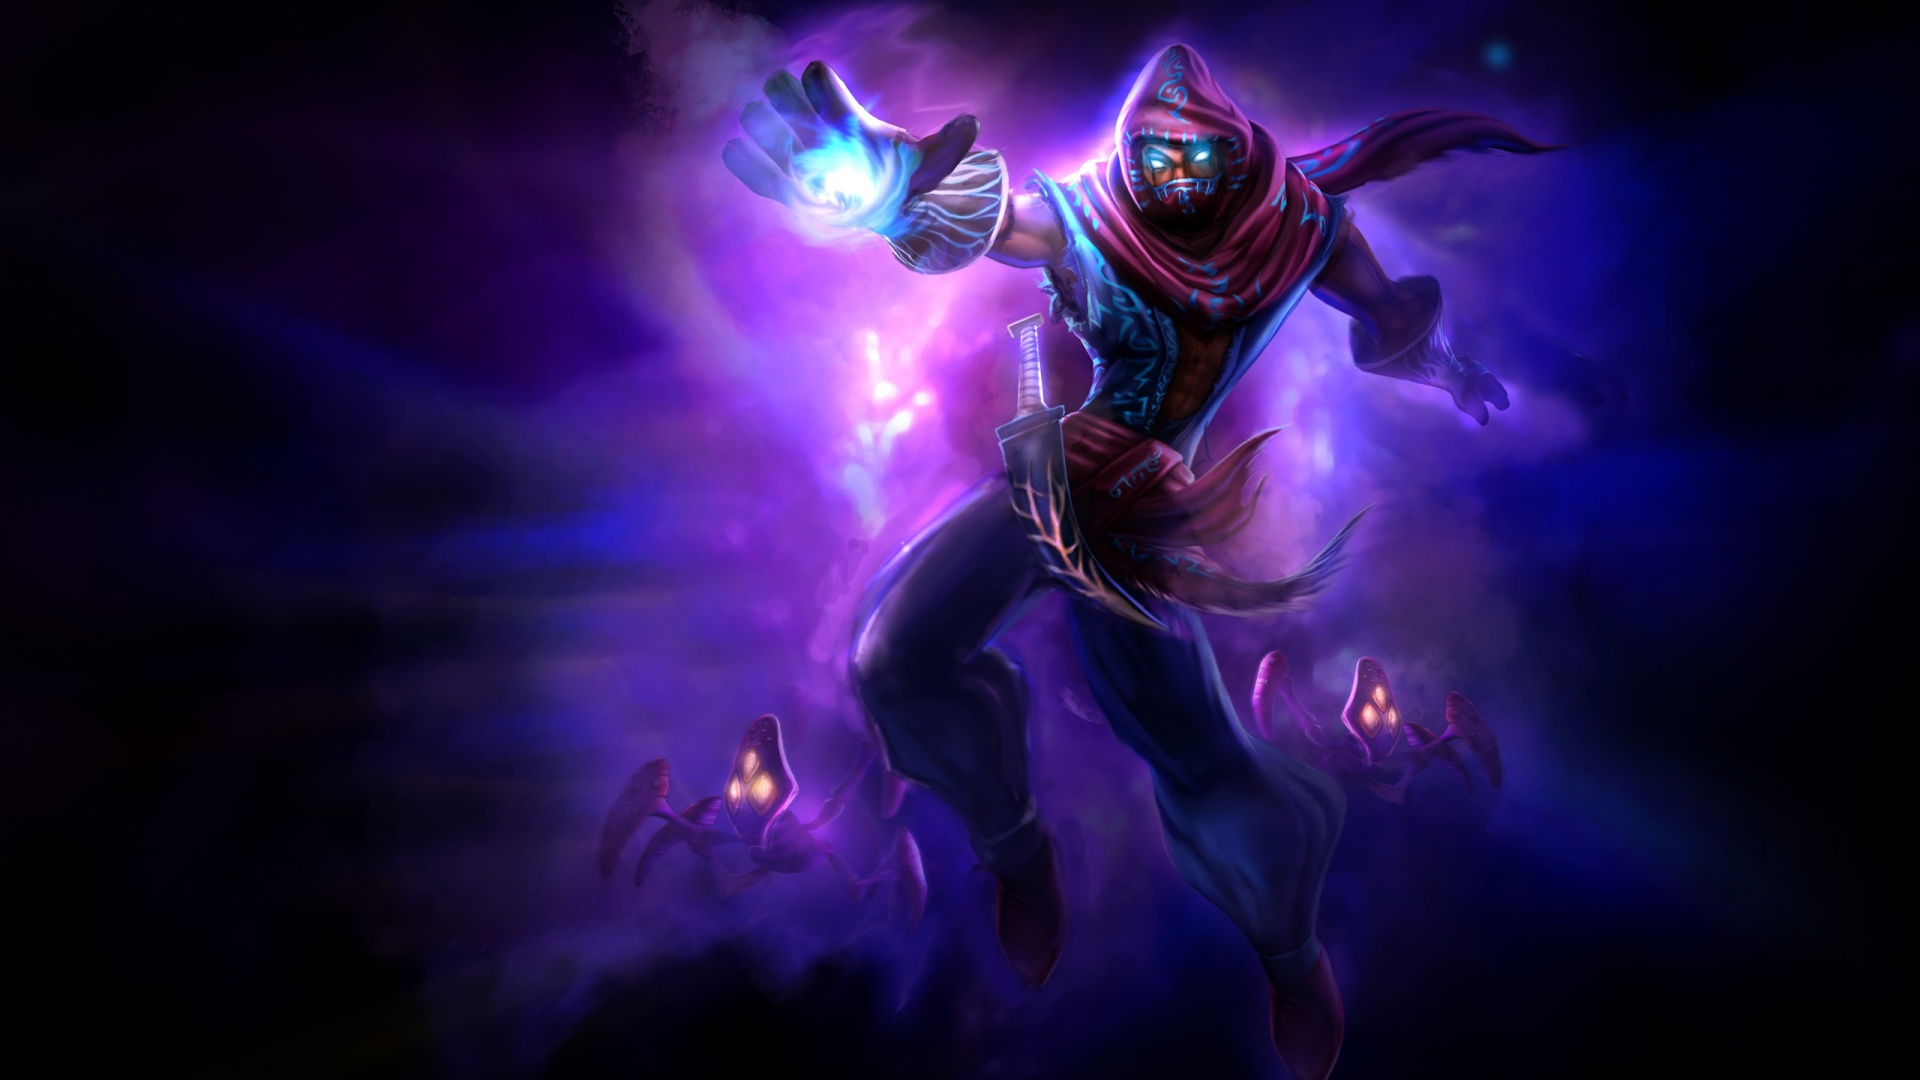 Olaf League of Legends   High Definition Wallpapers   HD wallpapers 1920x1080